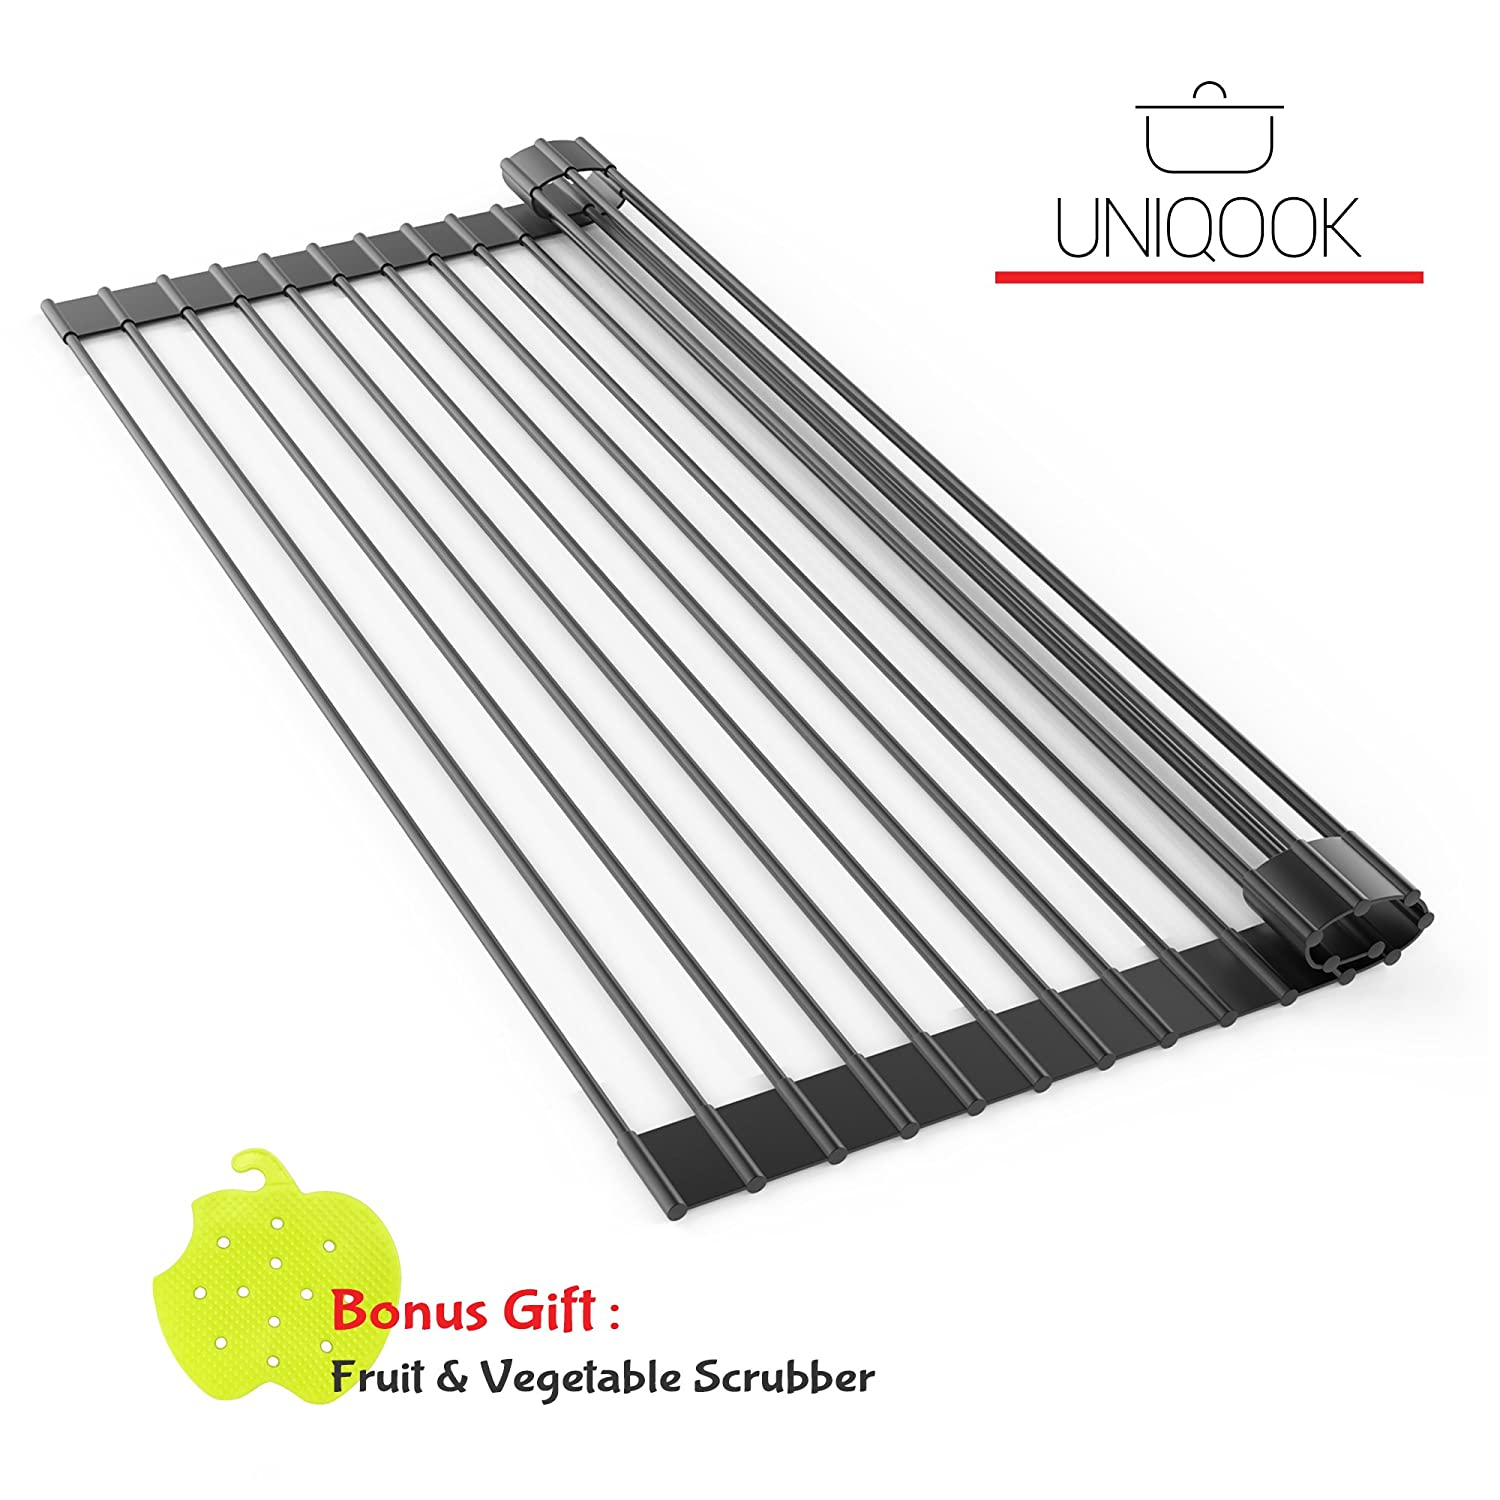 Uniqook Roll Up Dish Drying Rack - Over the Sink Multipurpose XL Silicone Stainless Steel Dishes Drainer, Drain Board Colander Mat and Dry Dishes Organizer, for Pans Bottles Bowls, Foldable Storage